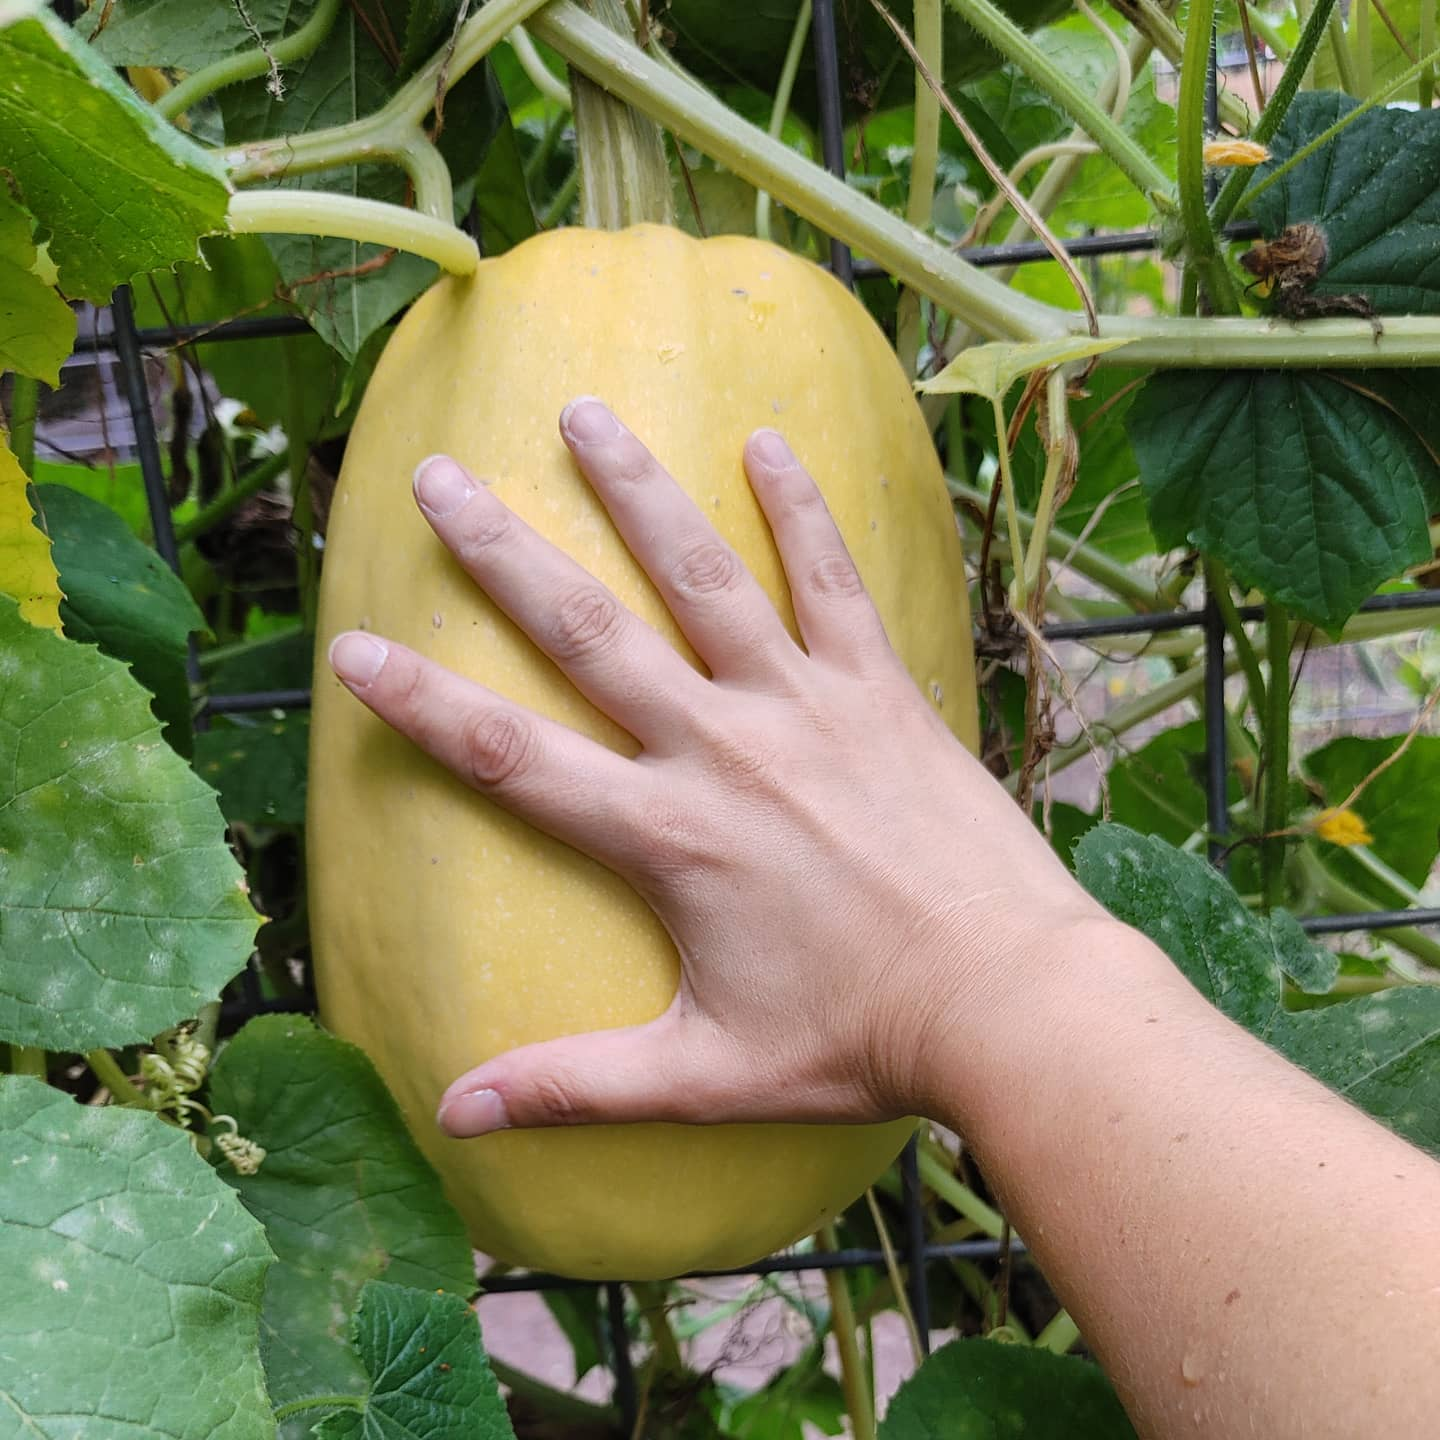 I think it is almost time to harvest my giant #spagettisquash! It has turned golden yellow and my fingernail does not easily penetrate the skin. I am now just waiting for the stem to turn a little brown. If I harvest too early it won't noodle well and that would be a major